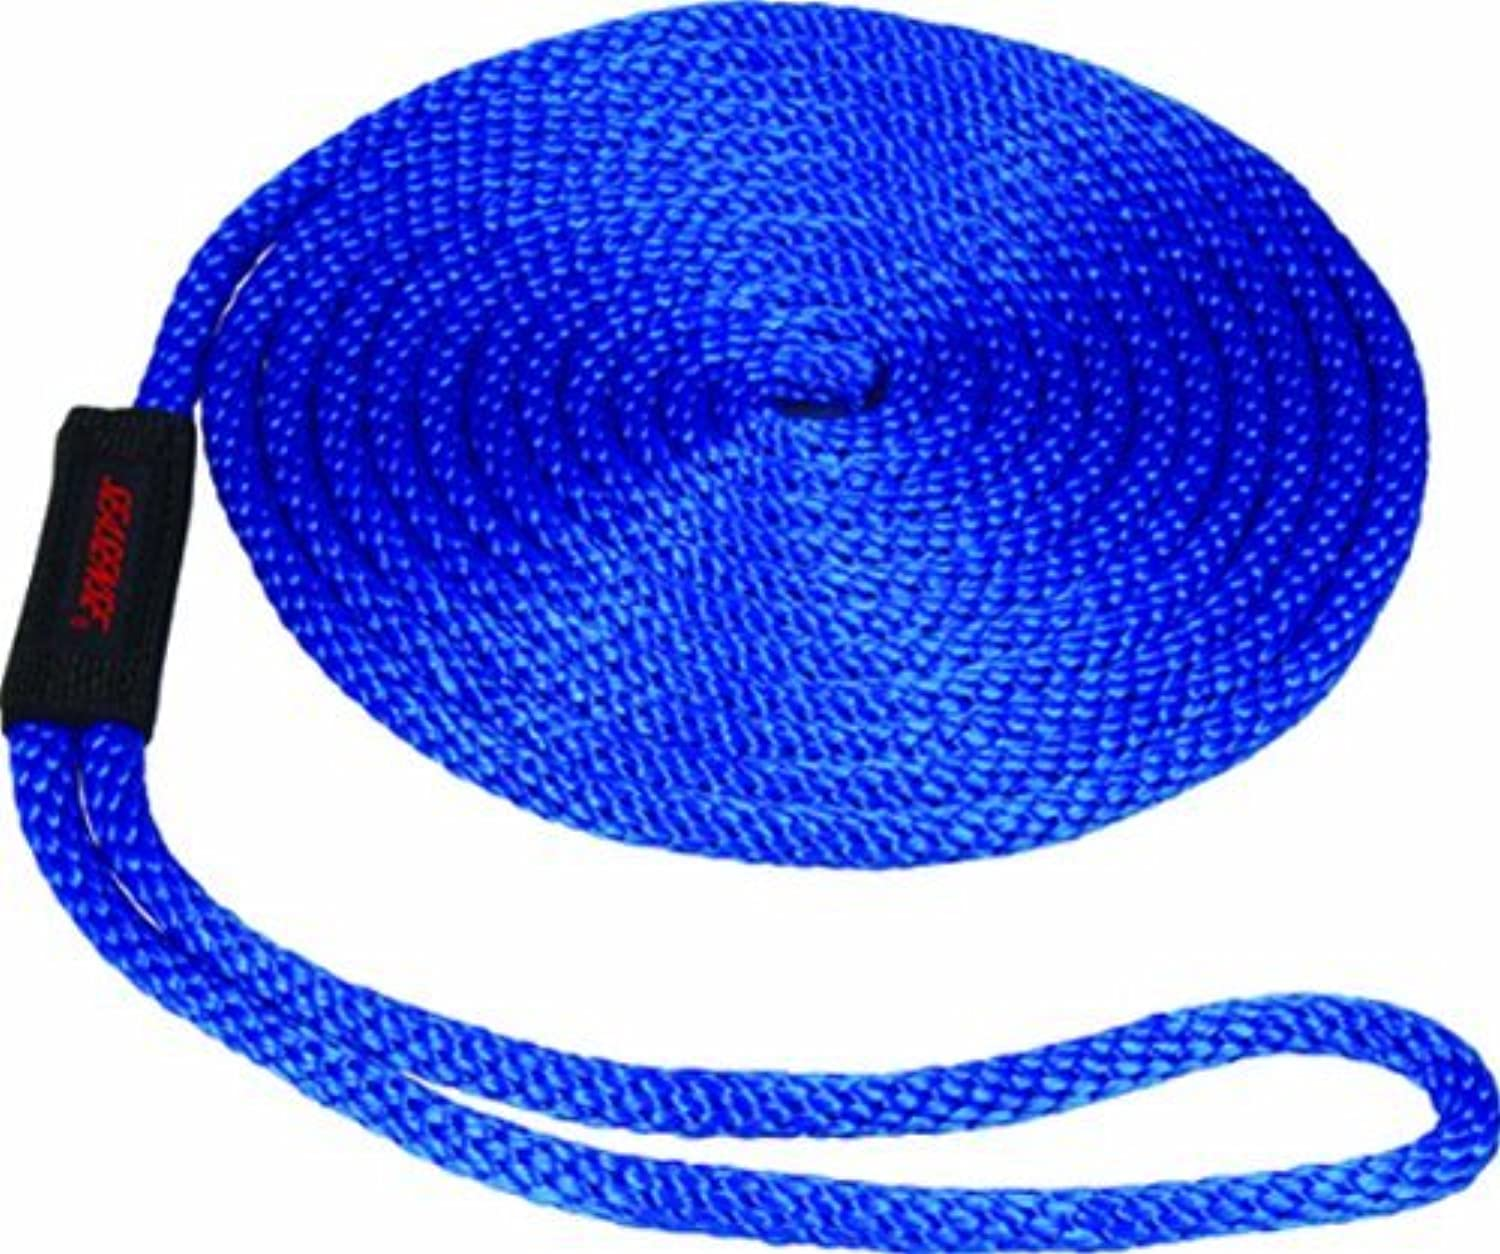 SeaSense Solid Braid MFP Dock Line with Chafe Guard, 1 2-Inch X 25-Foot, bluee by SeaSense